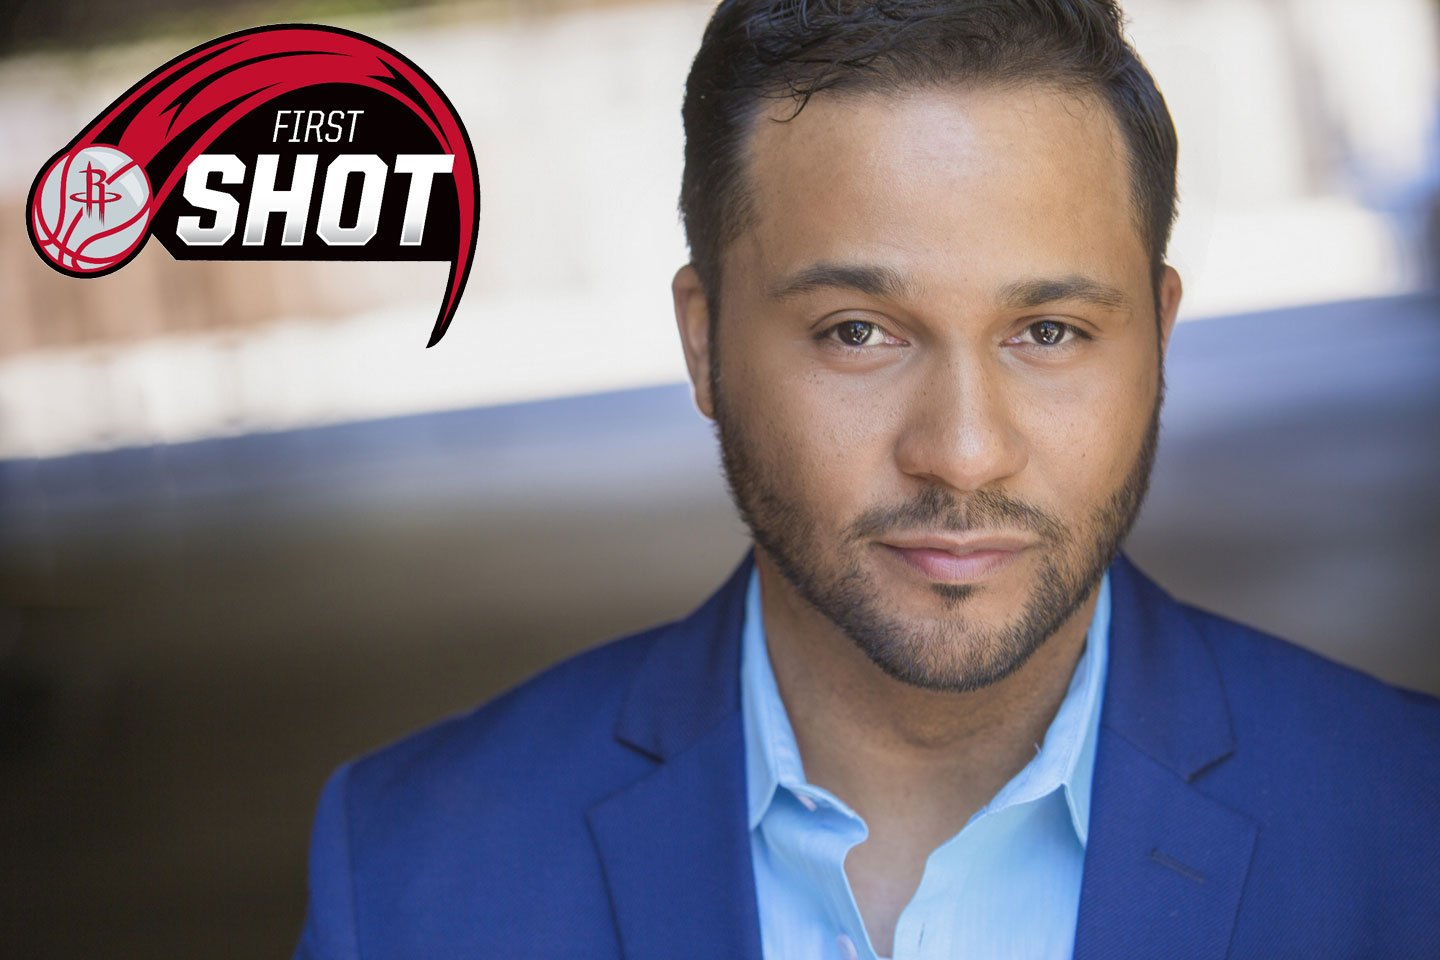 Tonight's First Shot for Charity will be taken by actor and Houston native @jasondirden! �� �� https://t.co/QU5KcCCWPK